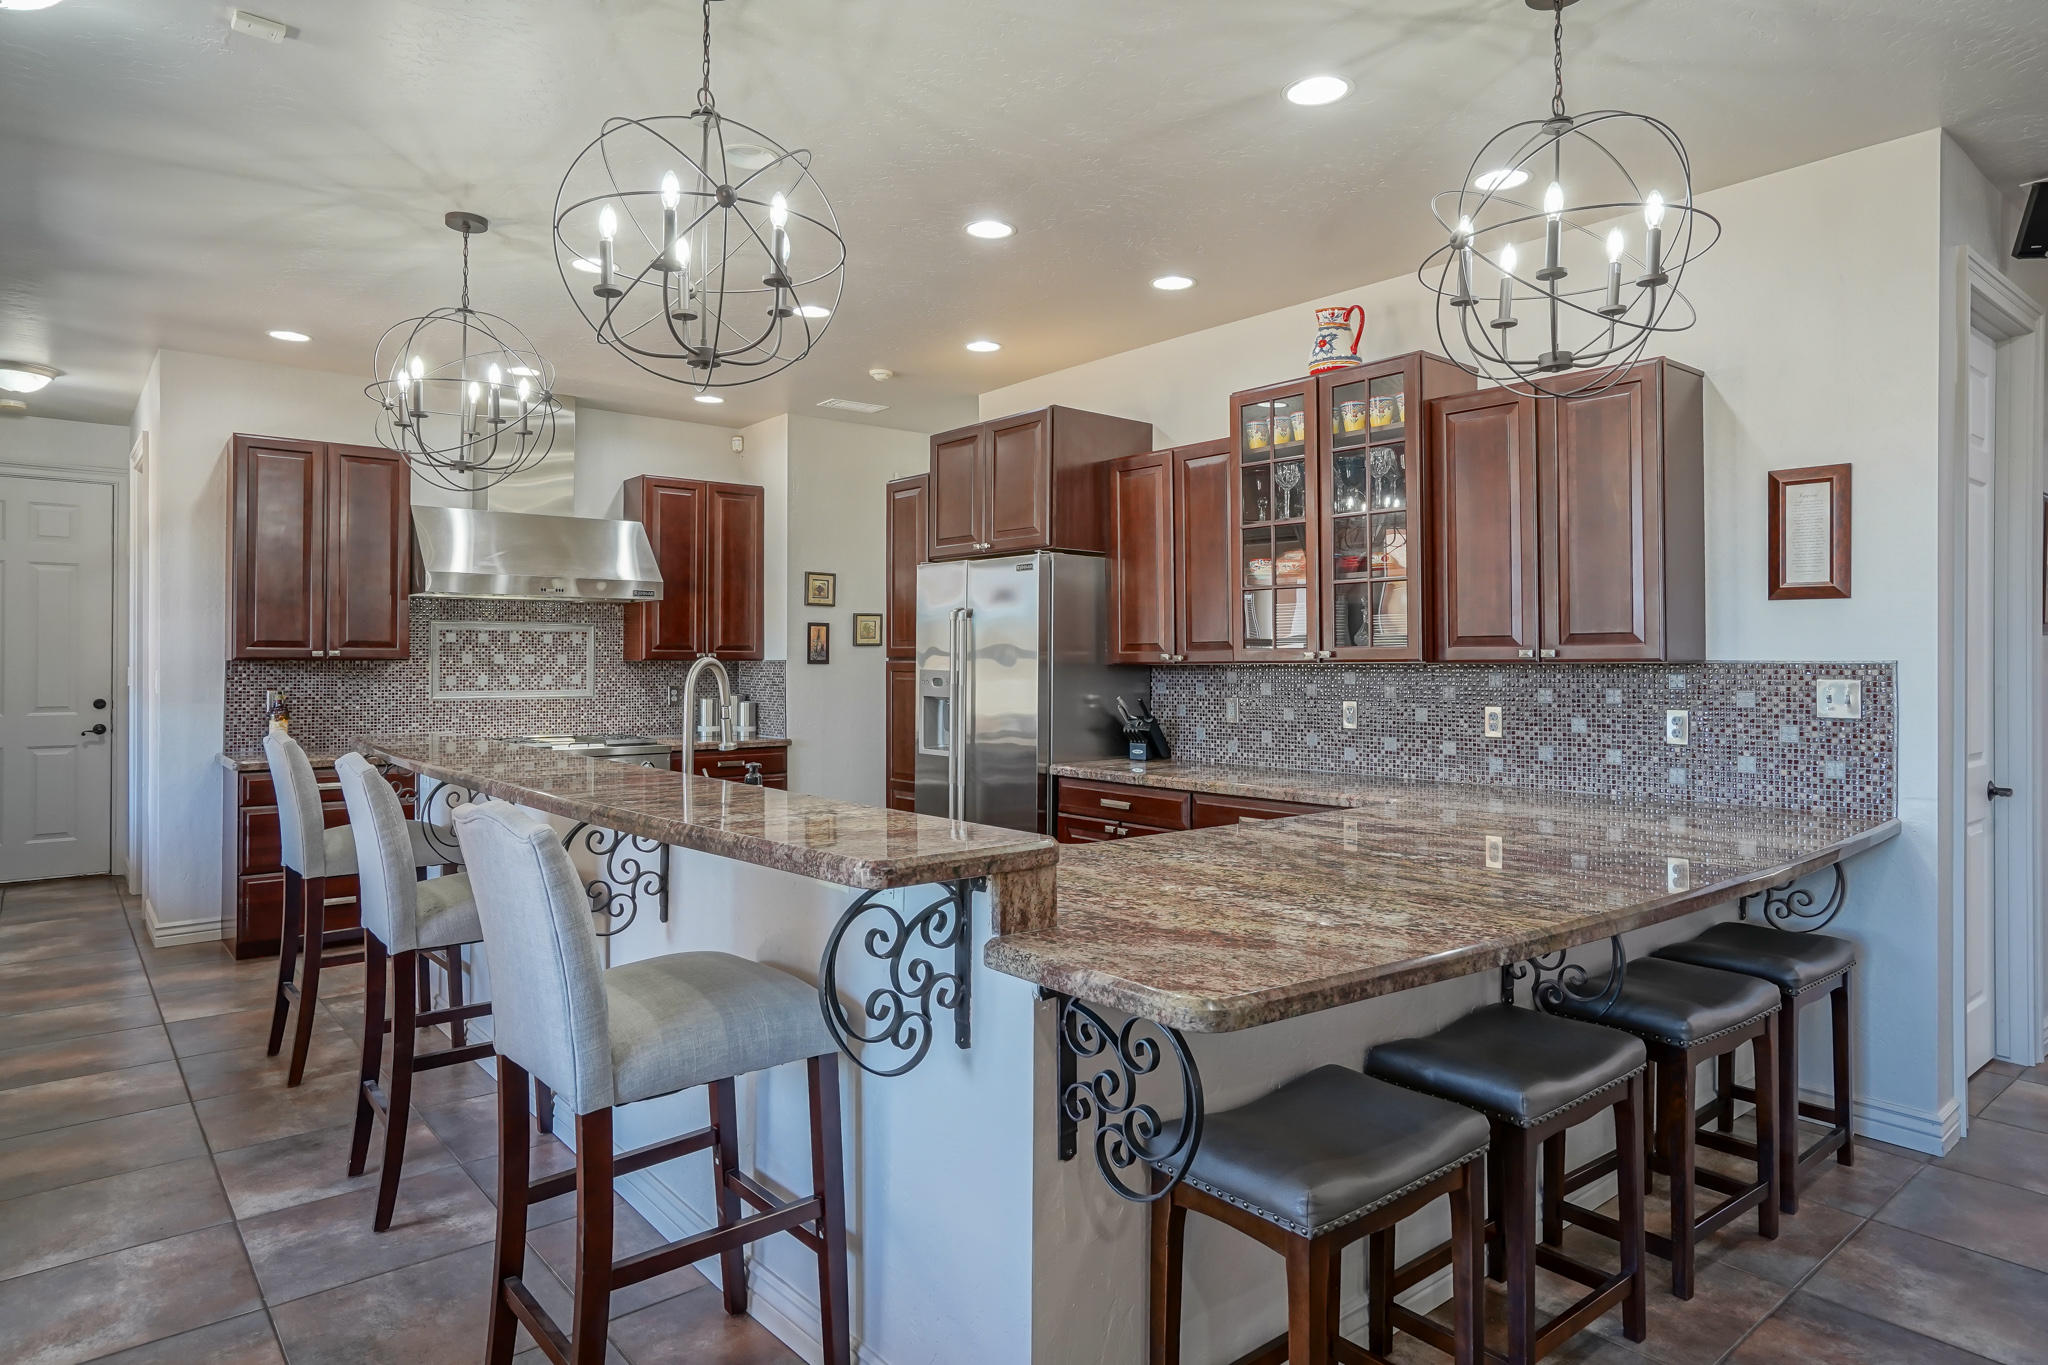 Stunning Custom Build in North ABQ Acres on .88 acres! The Main Home is a 4BD/ 3 BA with a 4 car garage.  Master Suite is conveniently located downstairs.  The Beautiful Kitchen boasts granite counters, a large breakfast bar, cherry cabinets, commercial grade, gas range and an oversized pantry. 2 living areas and 2 offices. The 4 car garage has its own heating and cooling. This area can be utilized as a gym or rec room.  Upstairs has 3 bedrooms and a full bath. This property has amazing mountain views.  The Backyard is perfect for entertaining, boasting 3 covered patios, 10 fruit trees, and a hot tub. Guest Home offers privacy and seclusion in 730 sq. ft.  1BR/1BA with a wood burning fireplace, refrigerated air and kitchenette. Schedule a private showing or take a virtual walkthrough!